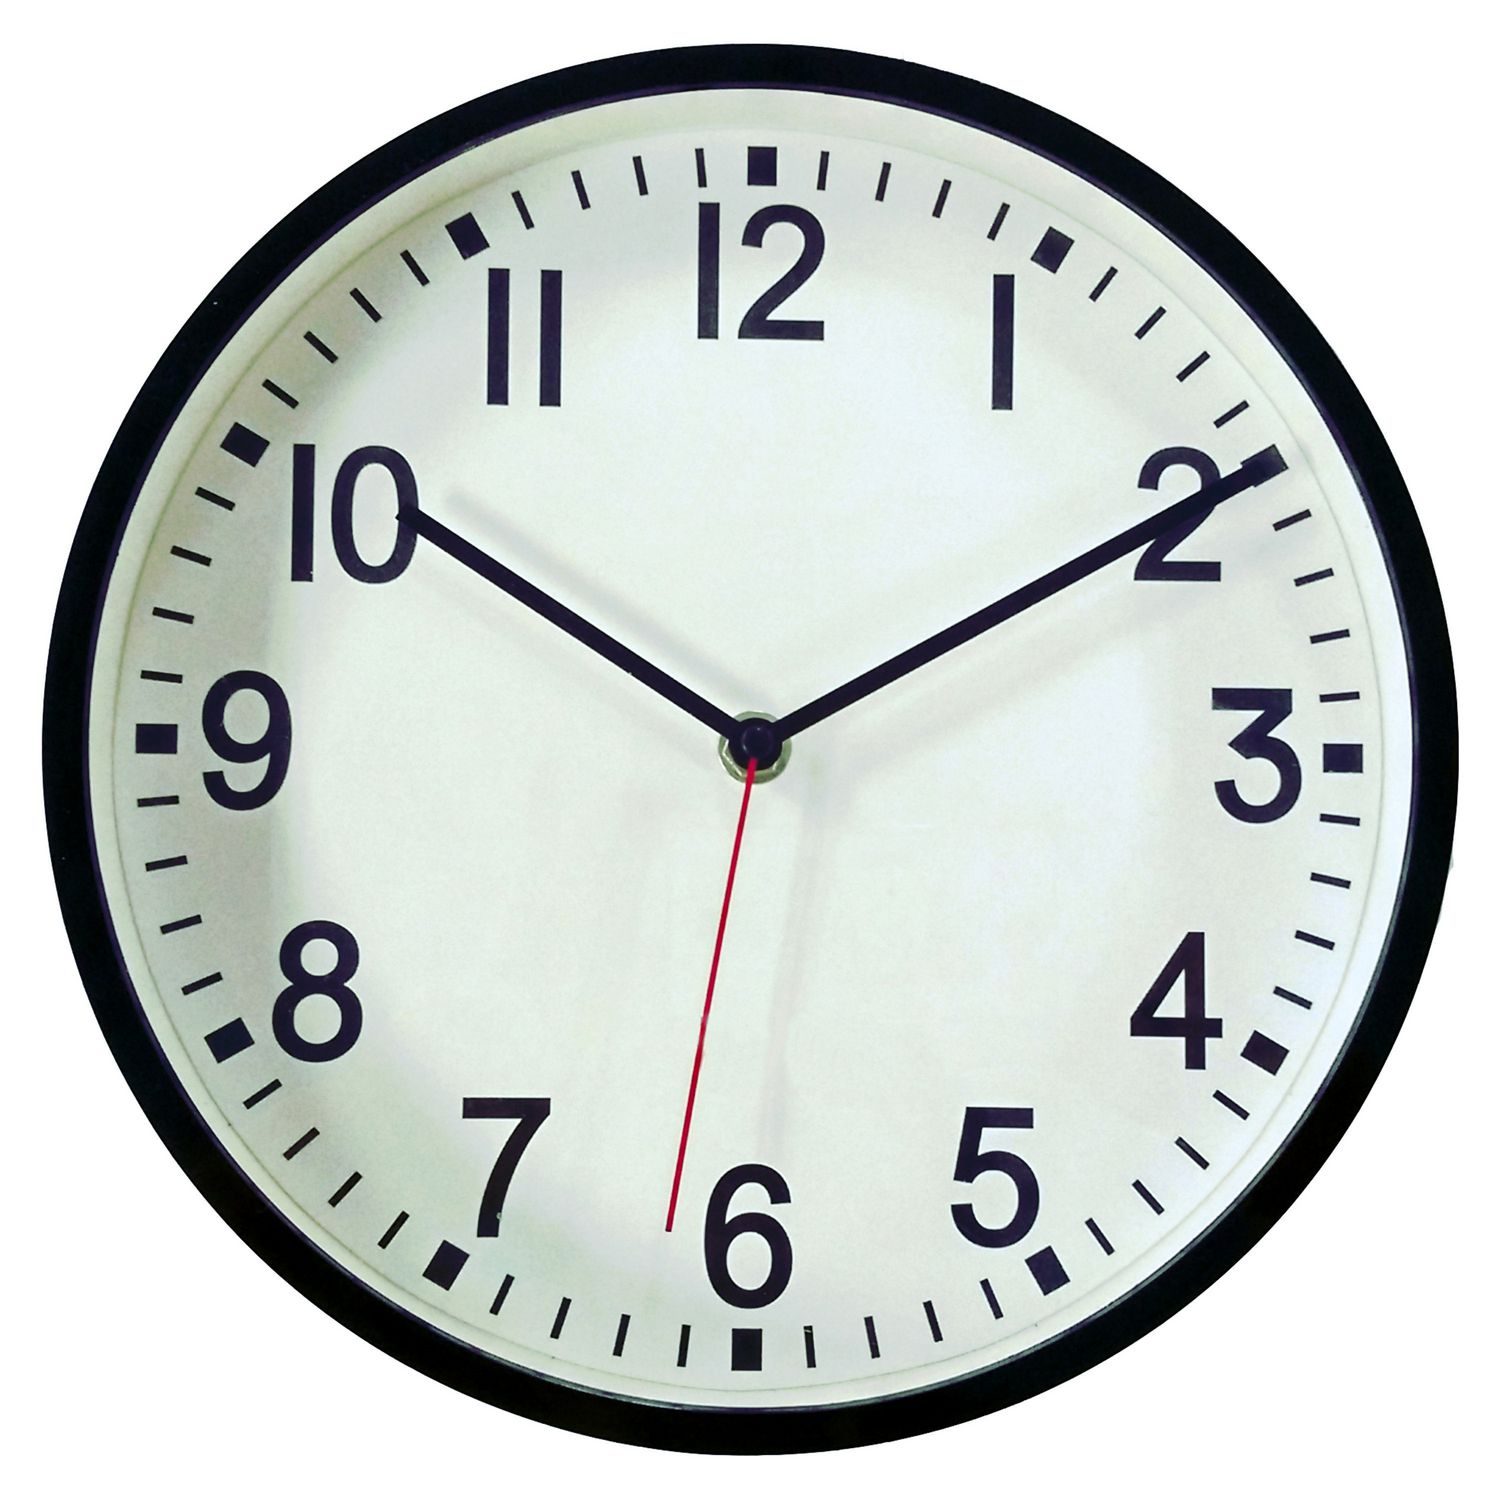 Hometrends black contemporary wall clock image 1 of 1 zoomed image